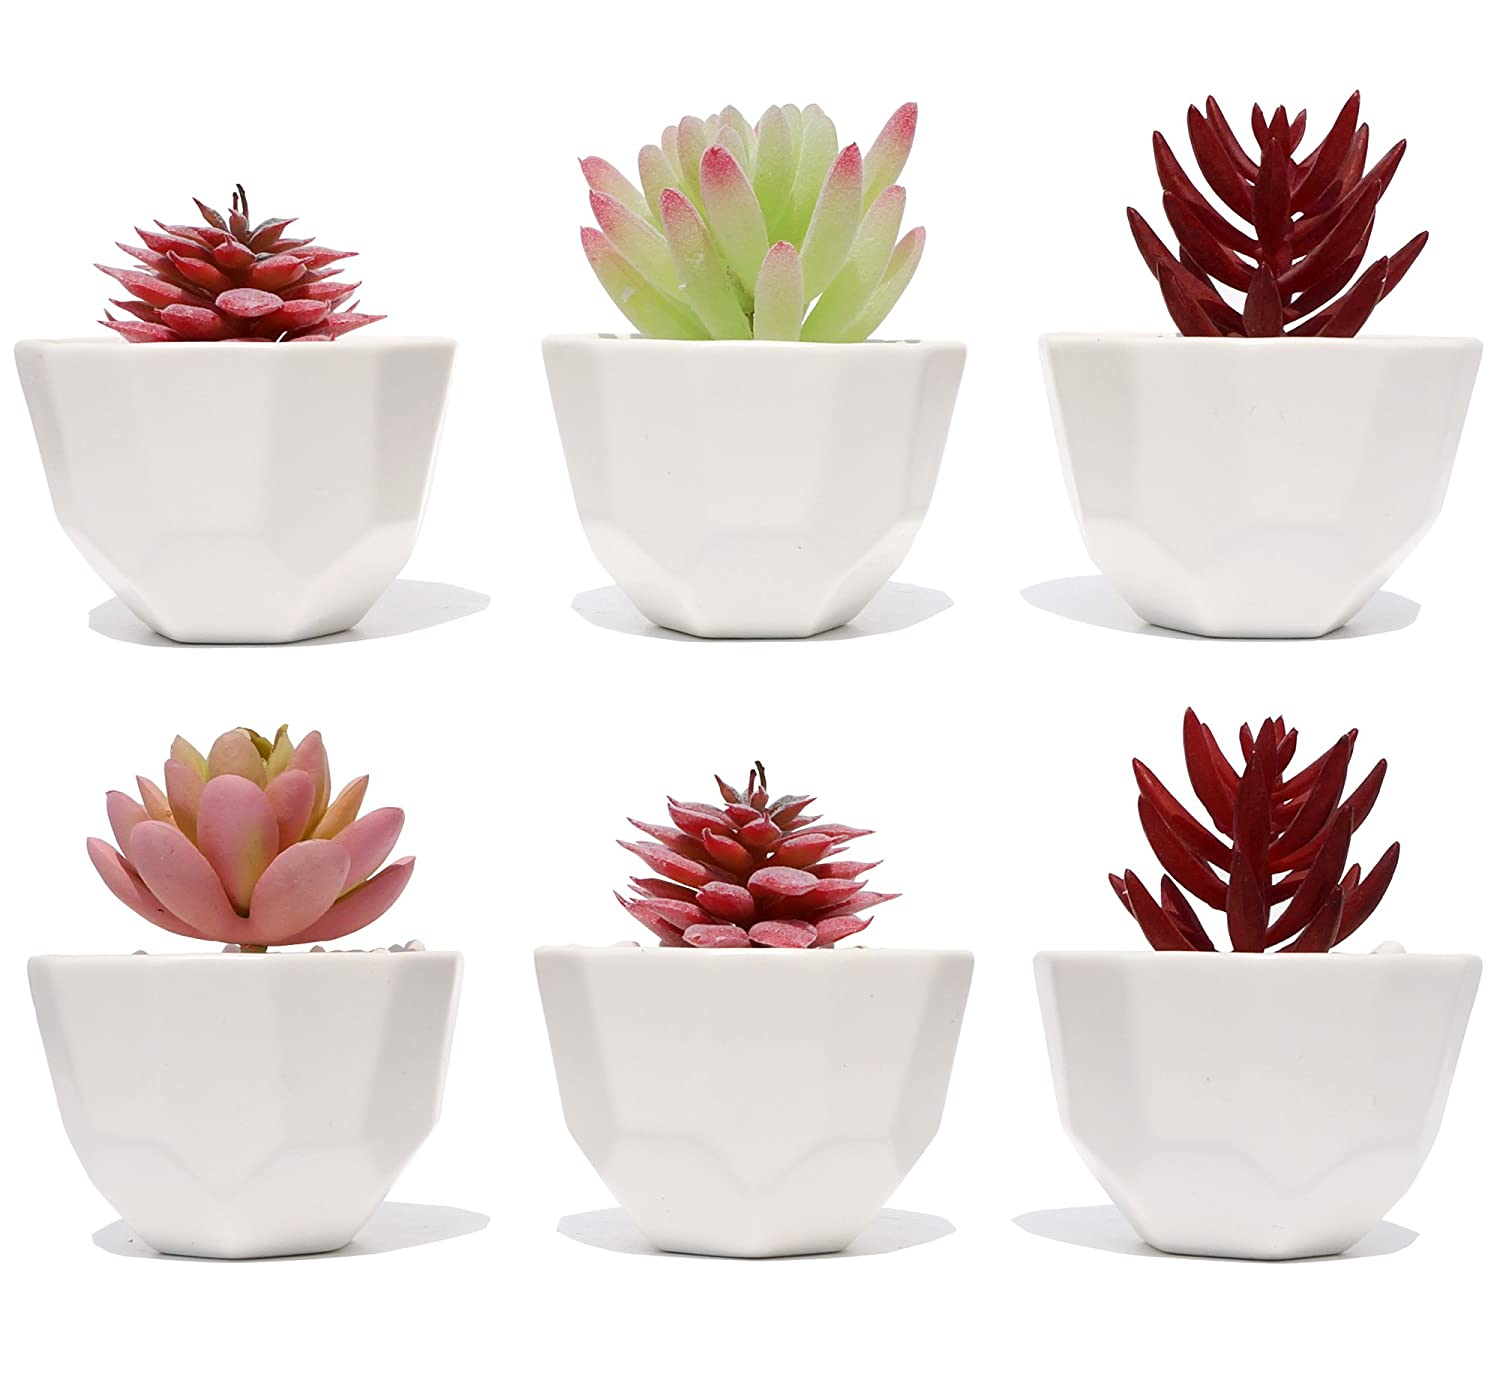 Succulent Planter Pot   3.2 Inch   Set Of 6   Small White Modern Decorative Ceramic Flower Plant Pot With Drainage   Home Office Desk Garden Mini Cactus Pot Indoor Decoration by Asriver